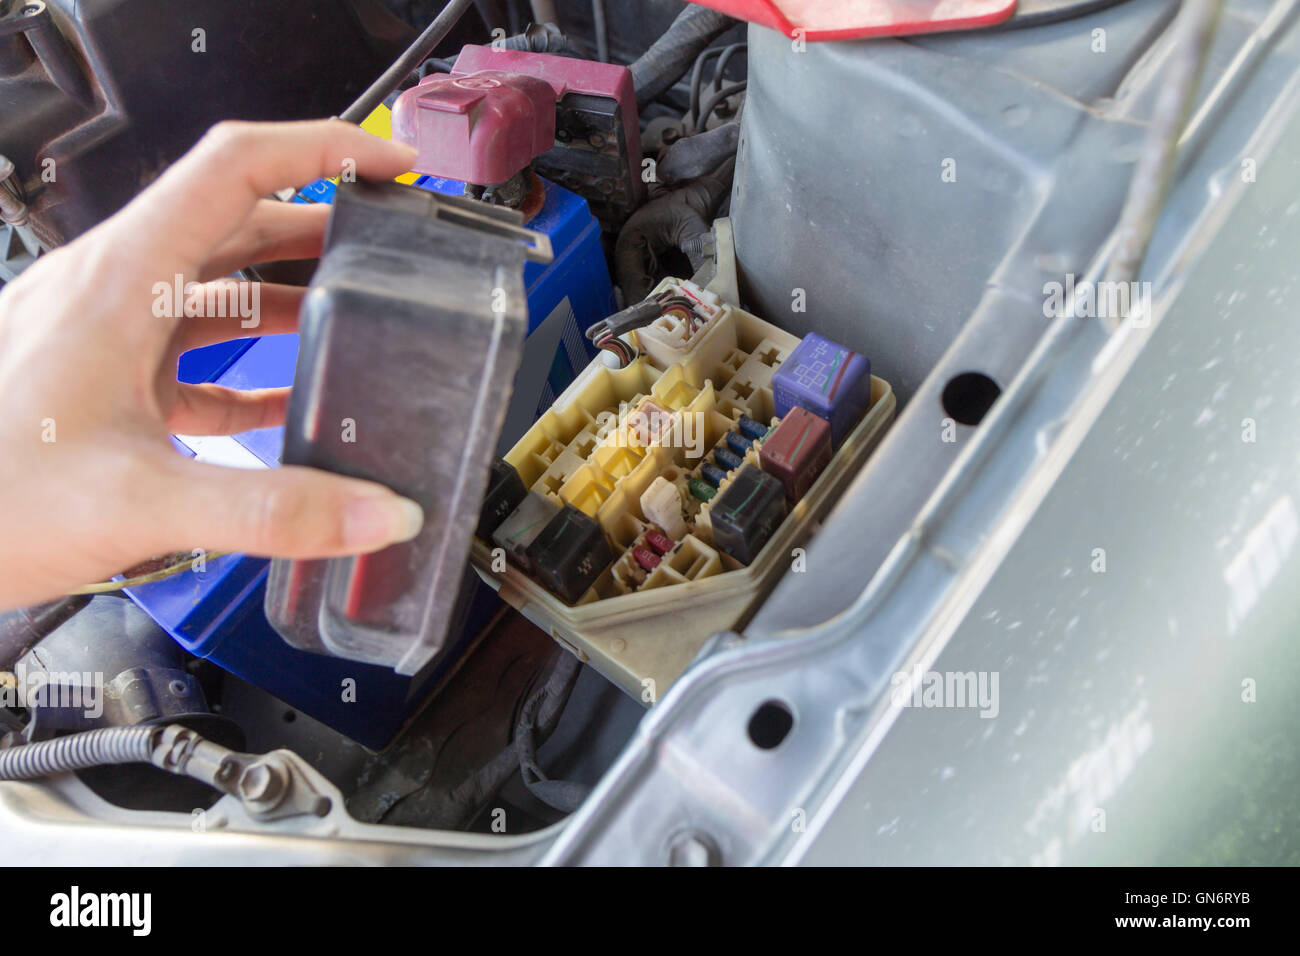 hight resolution of the man opening fuse box of old car stock image